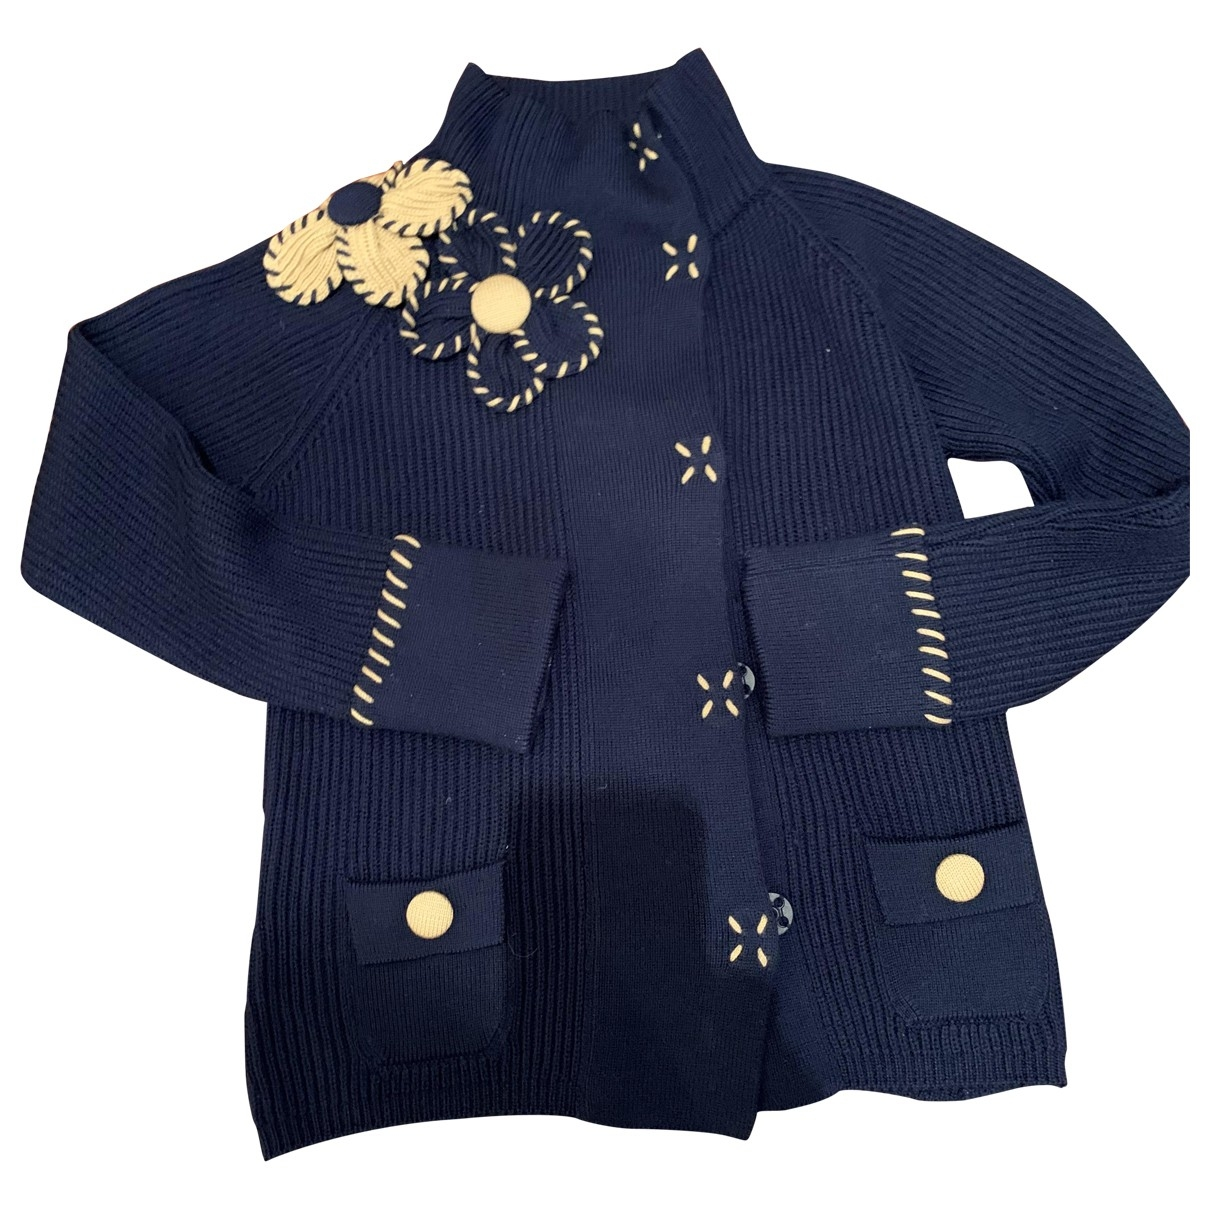 Moschino Cheap And Chic - Pull   pour femme en laine - bleu